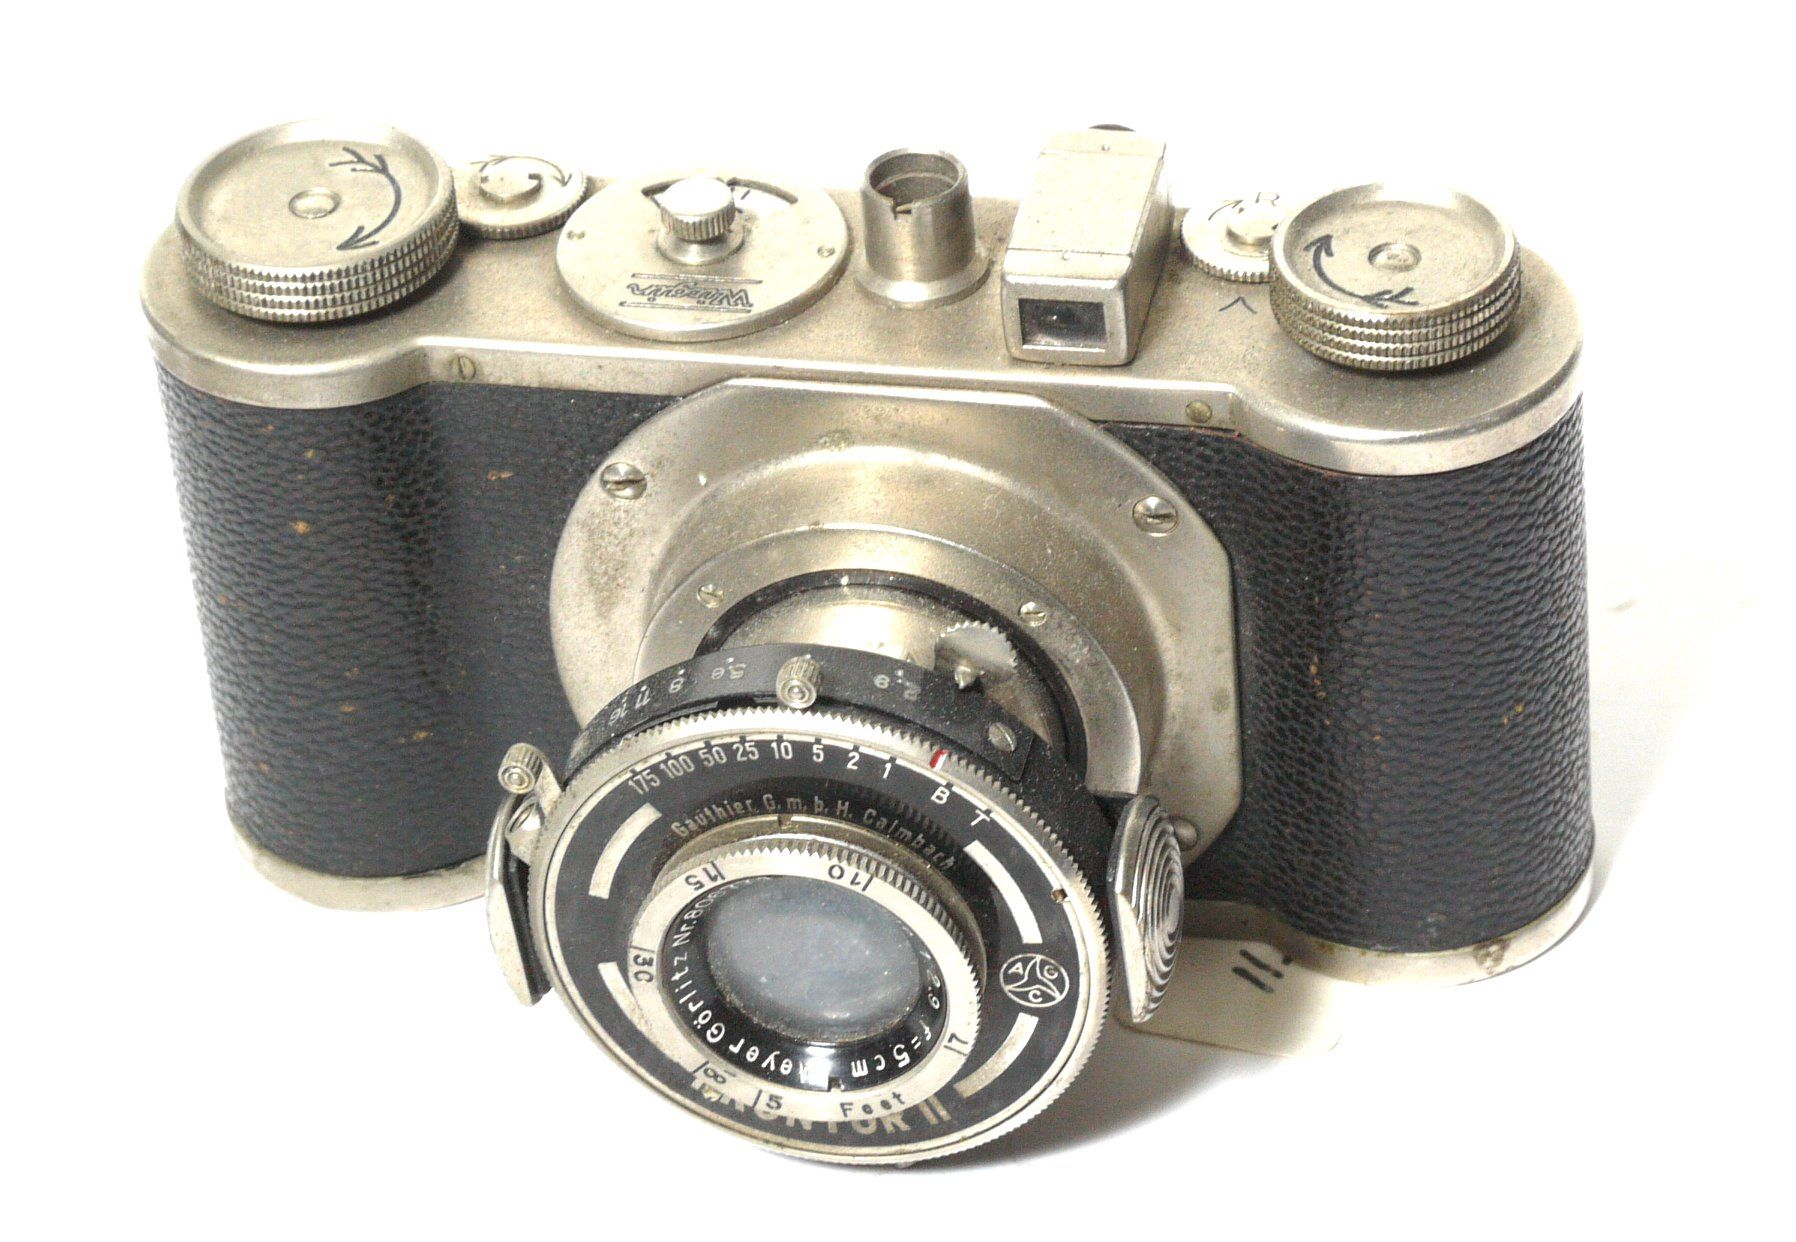 Wirgin Edinex 35mm Compact Viewfinder Camera